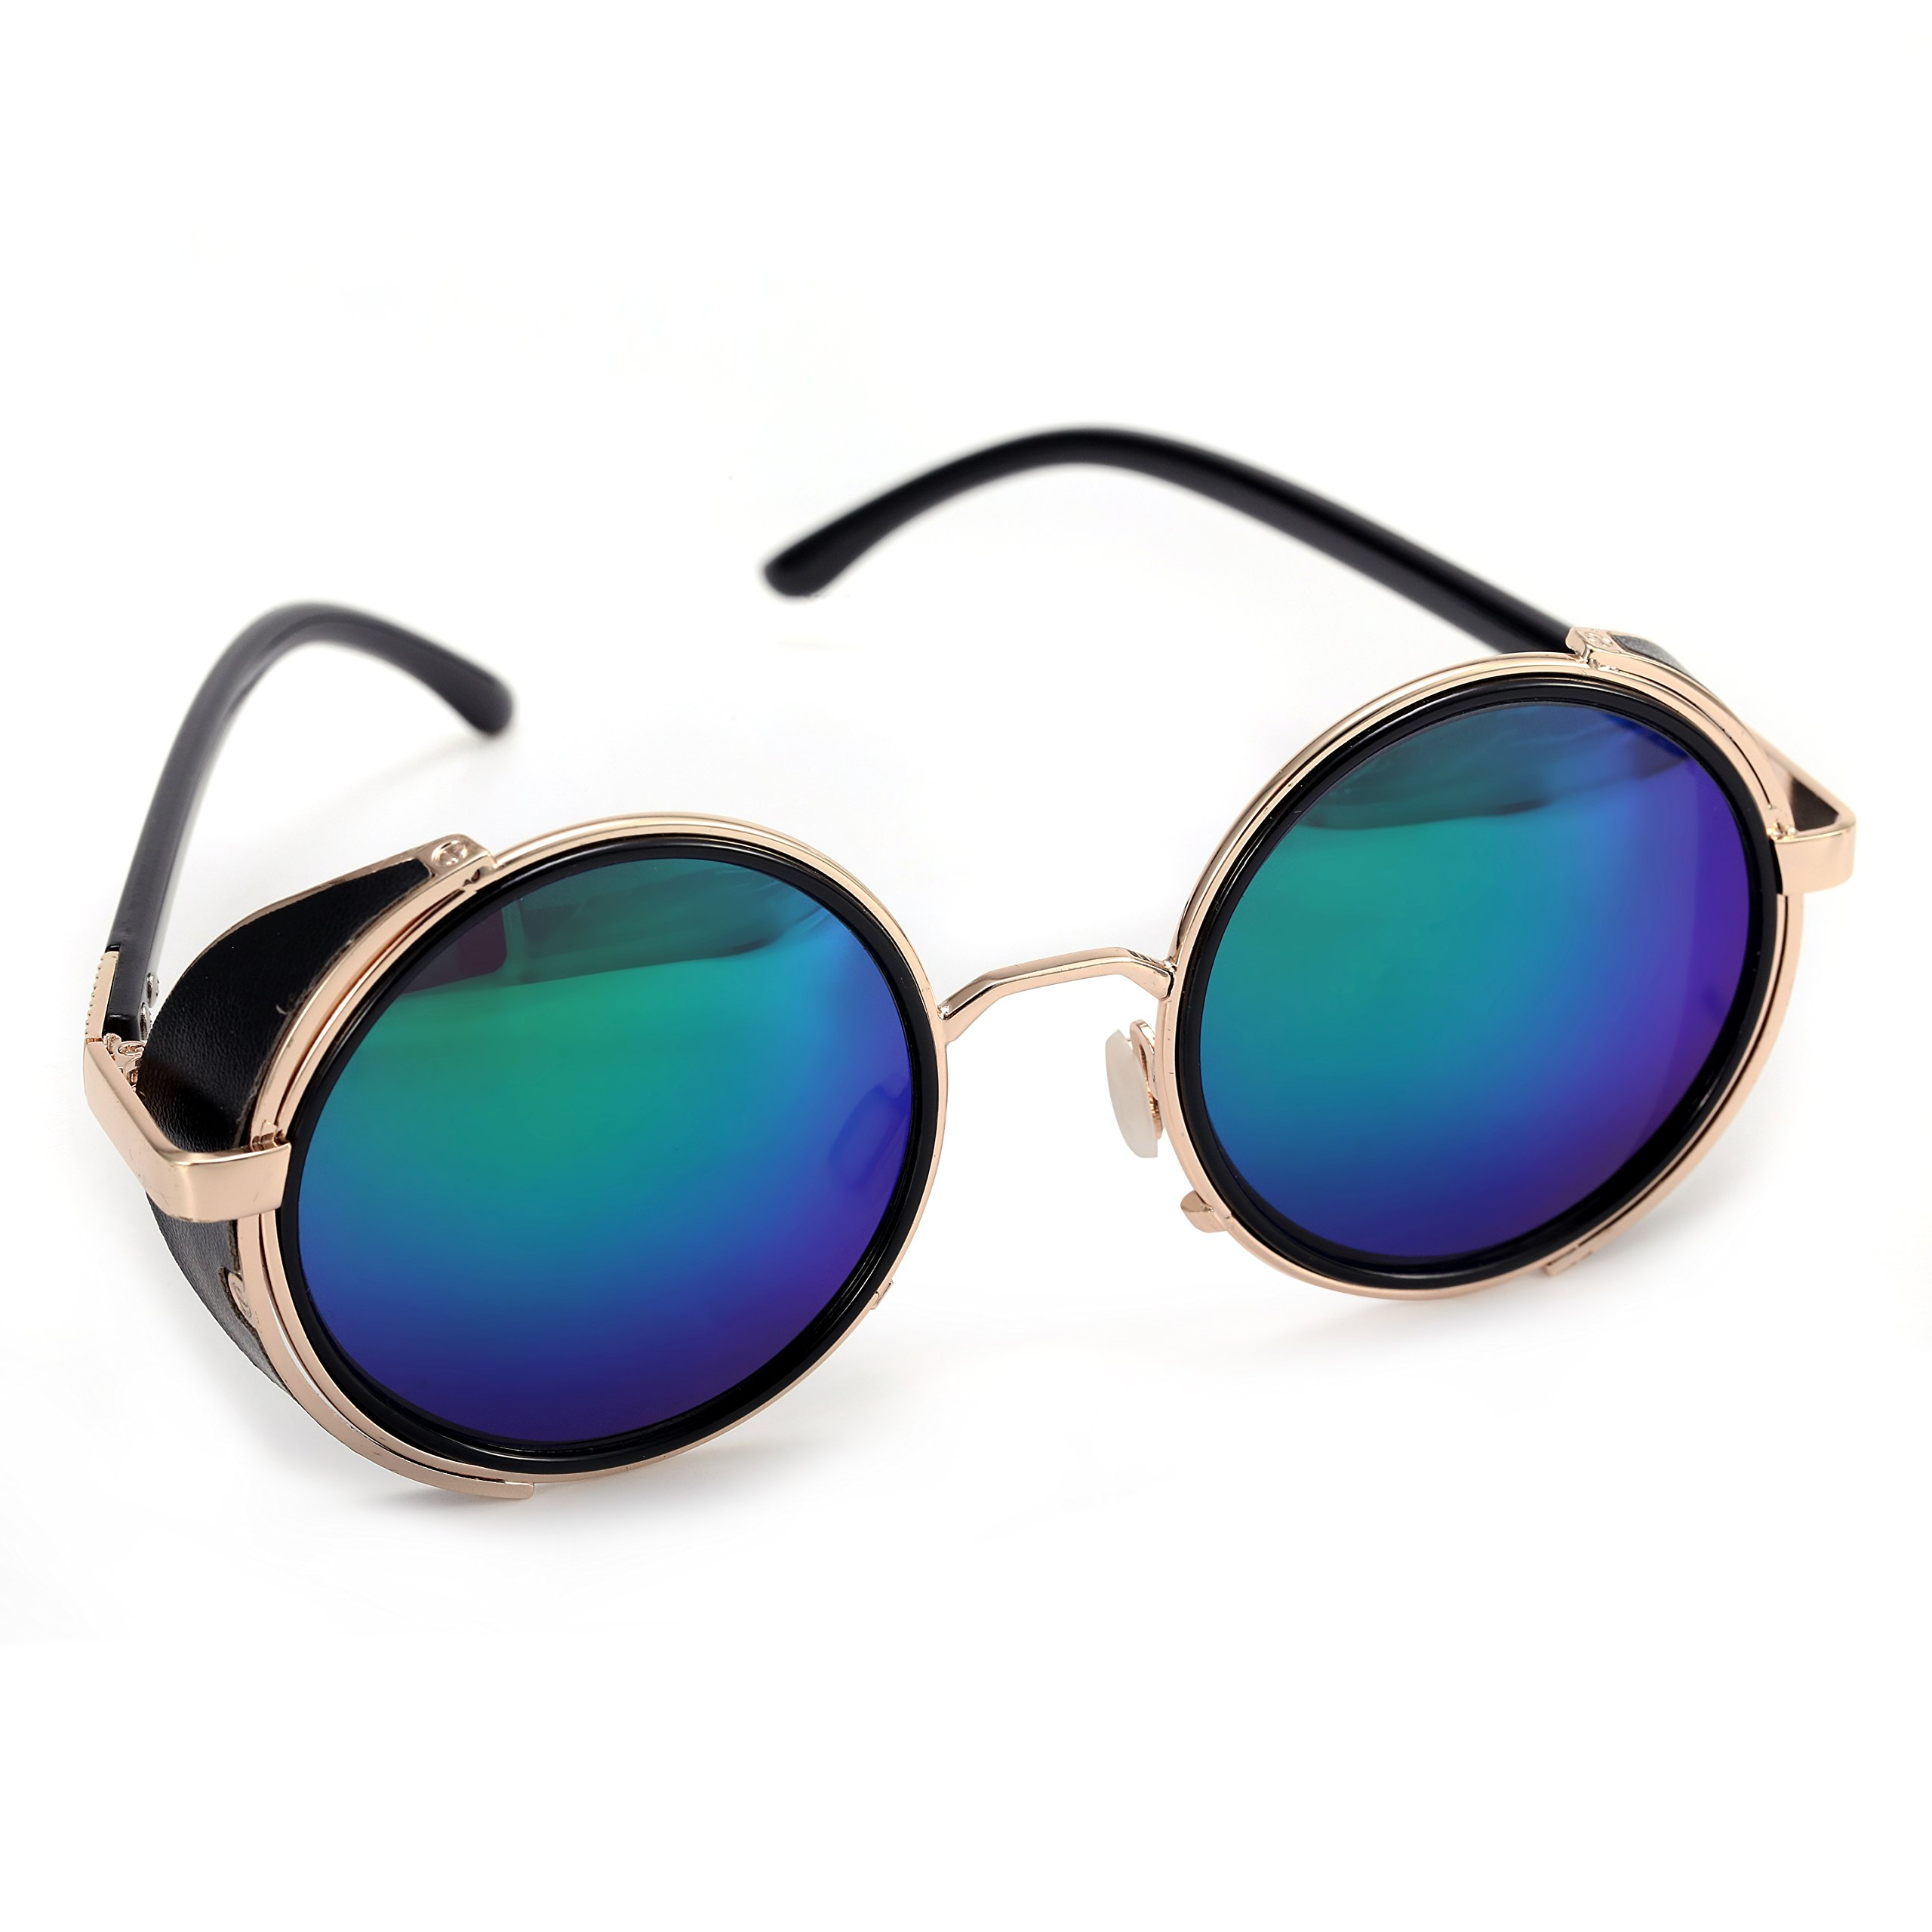 0ed1e2277e8 Details about Mirror lens Round Glasses Cyber Goggles Steampunk Sunglasses  Vintage